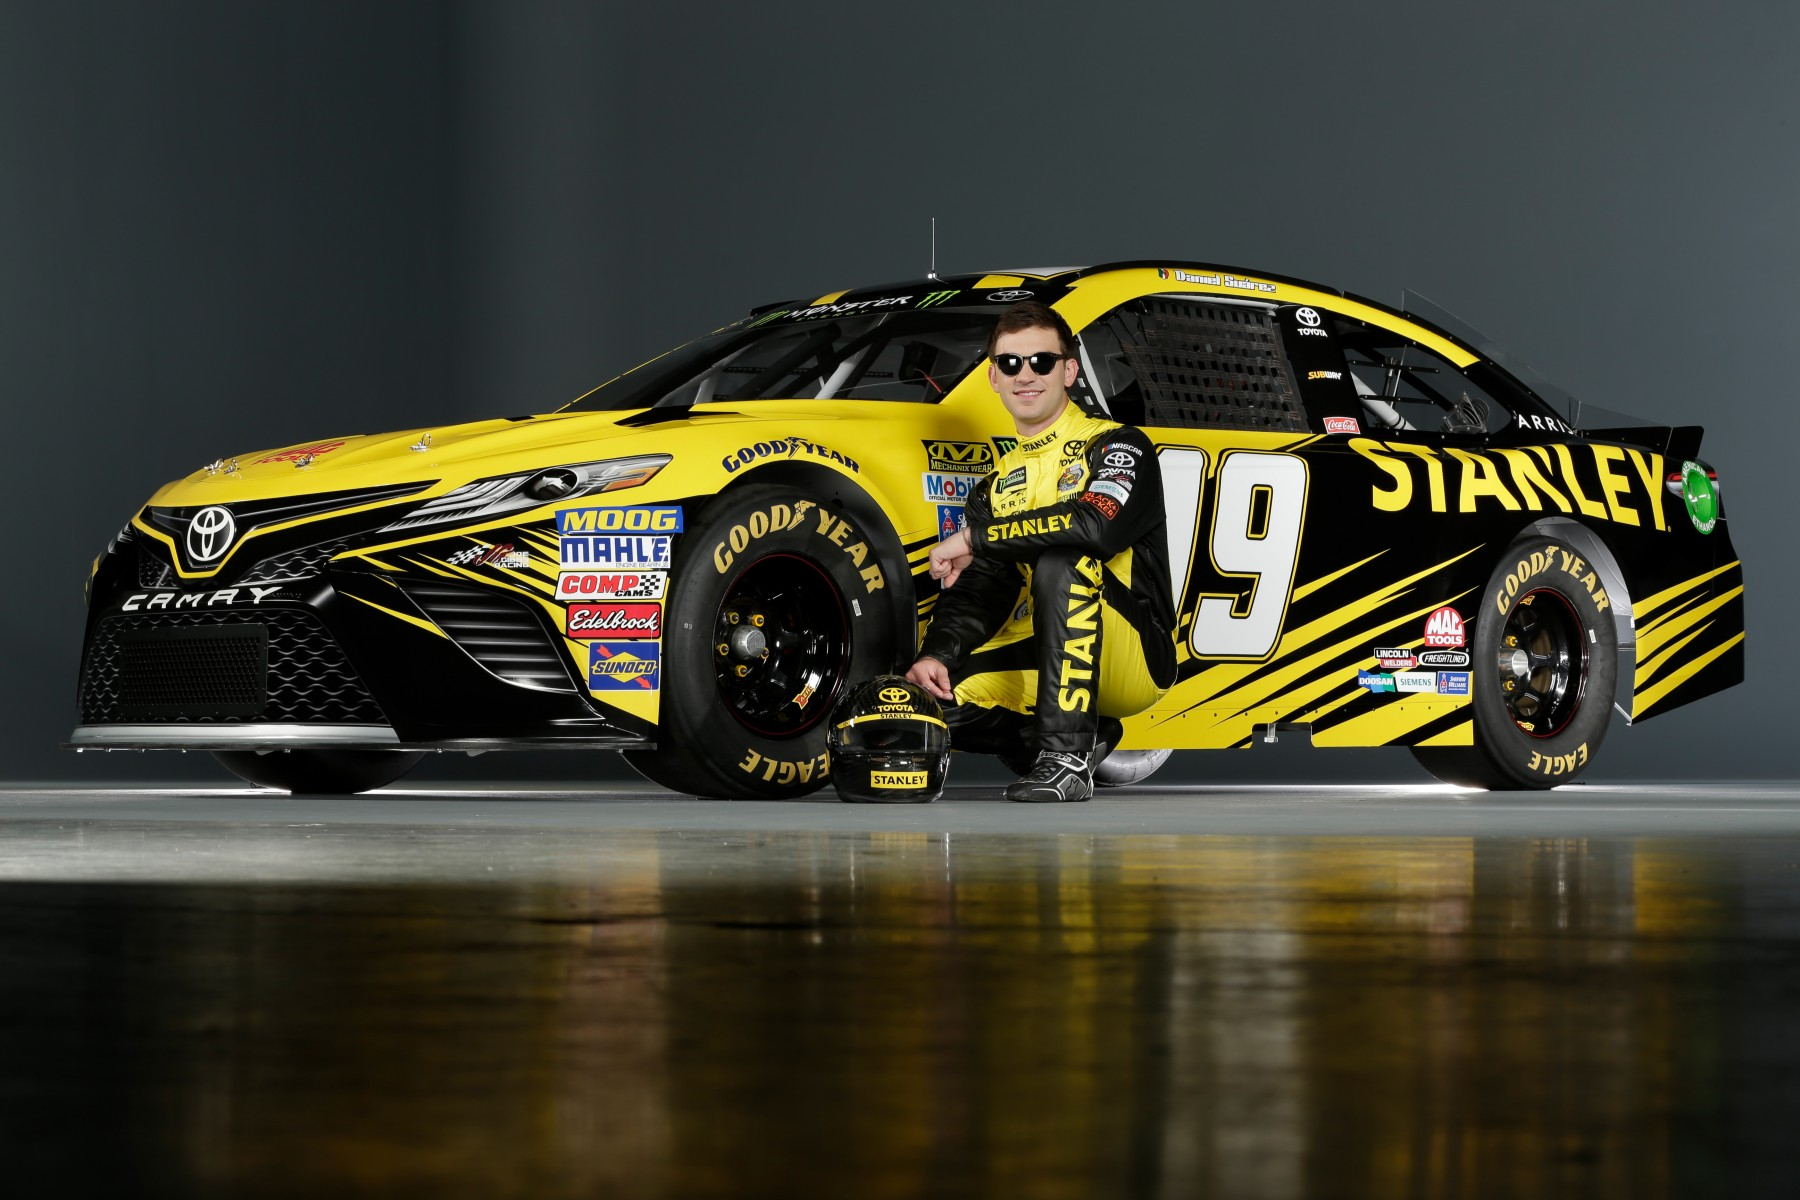 Daniel Suarez And No 19 Stanley Team Race For A Miracle This Weekend